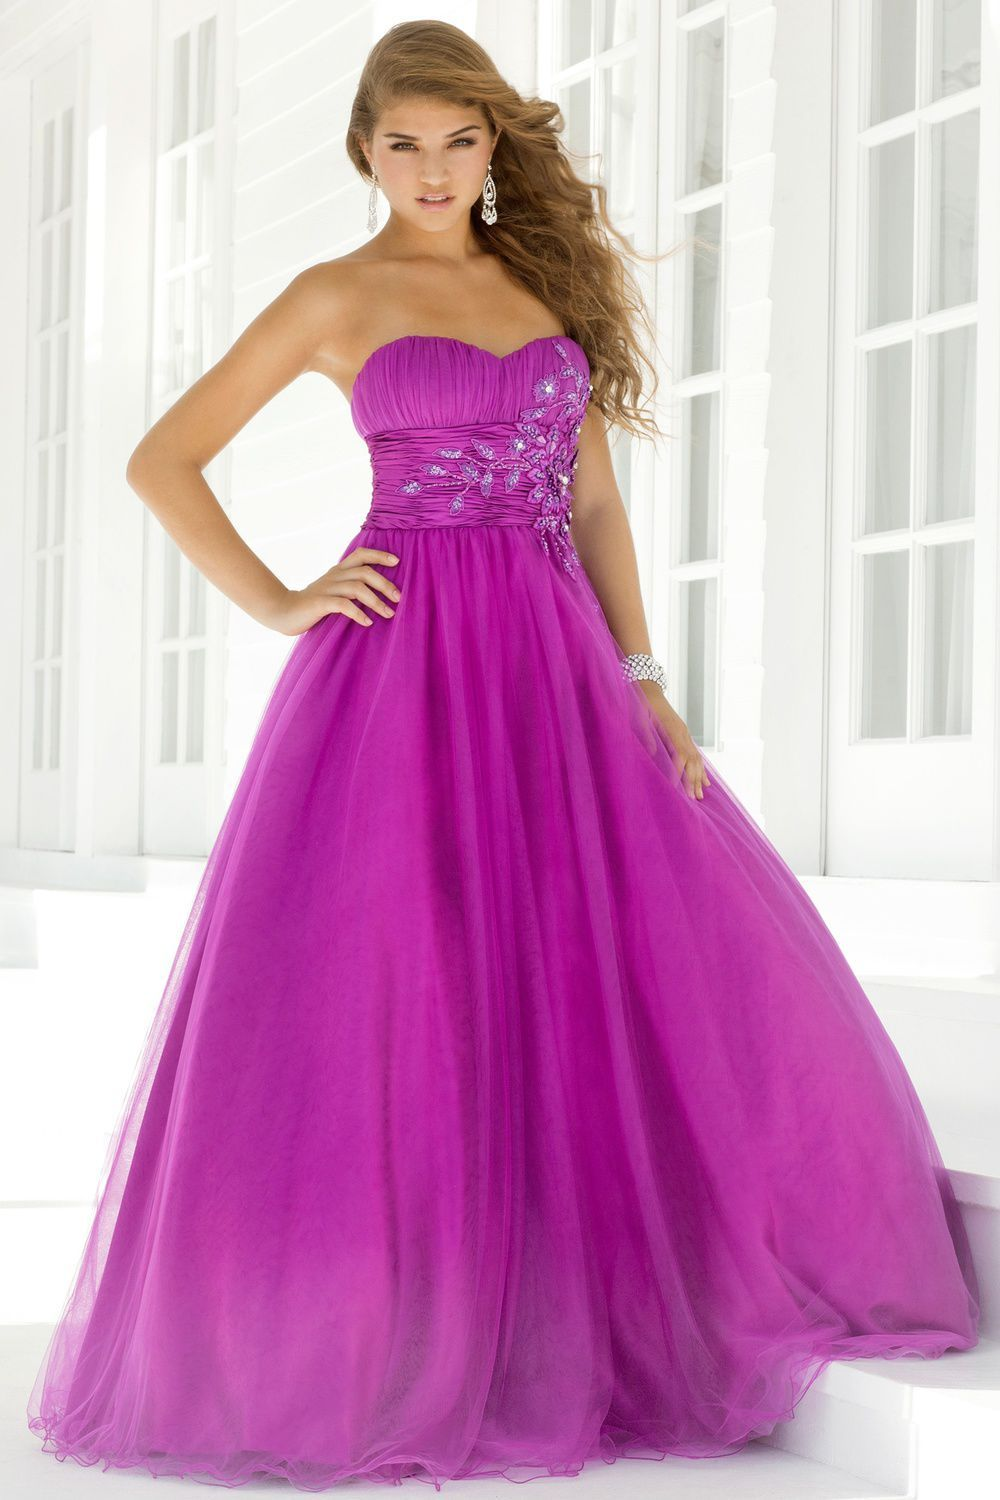 blush-prom-dresses-2012-065.jpg (1000×1500) | Dress for her | Pinterest